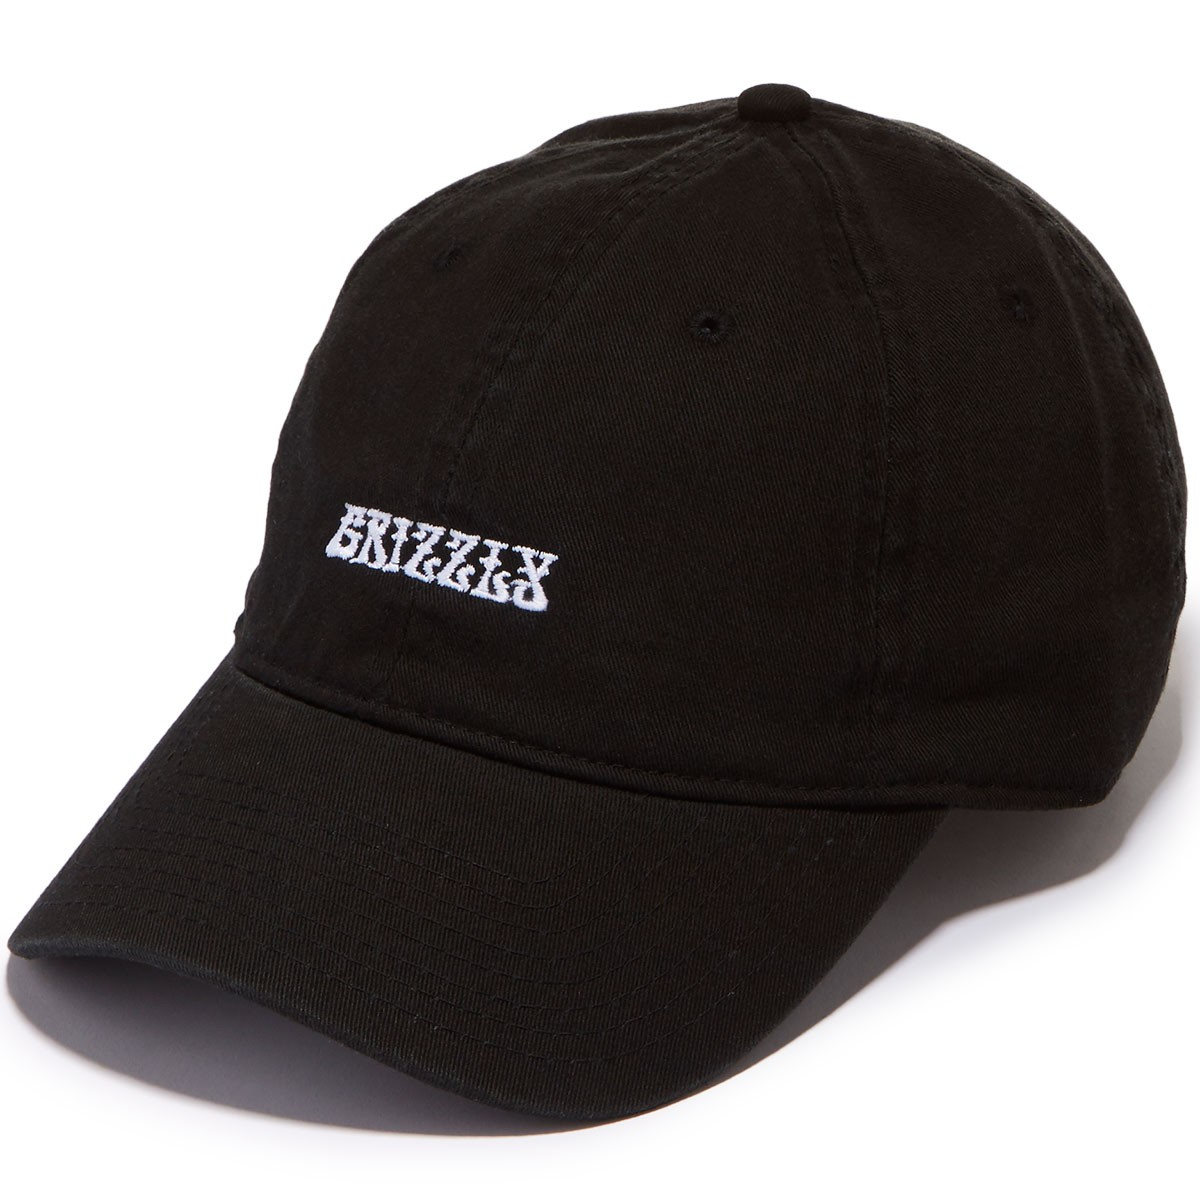 Grizzly X Jimi Hendrix Grizzly Hendrix Dad Hat - Black